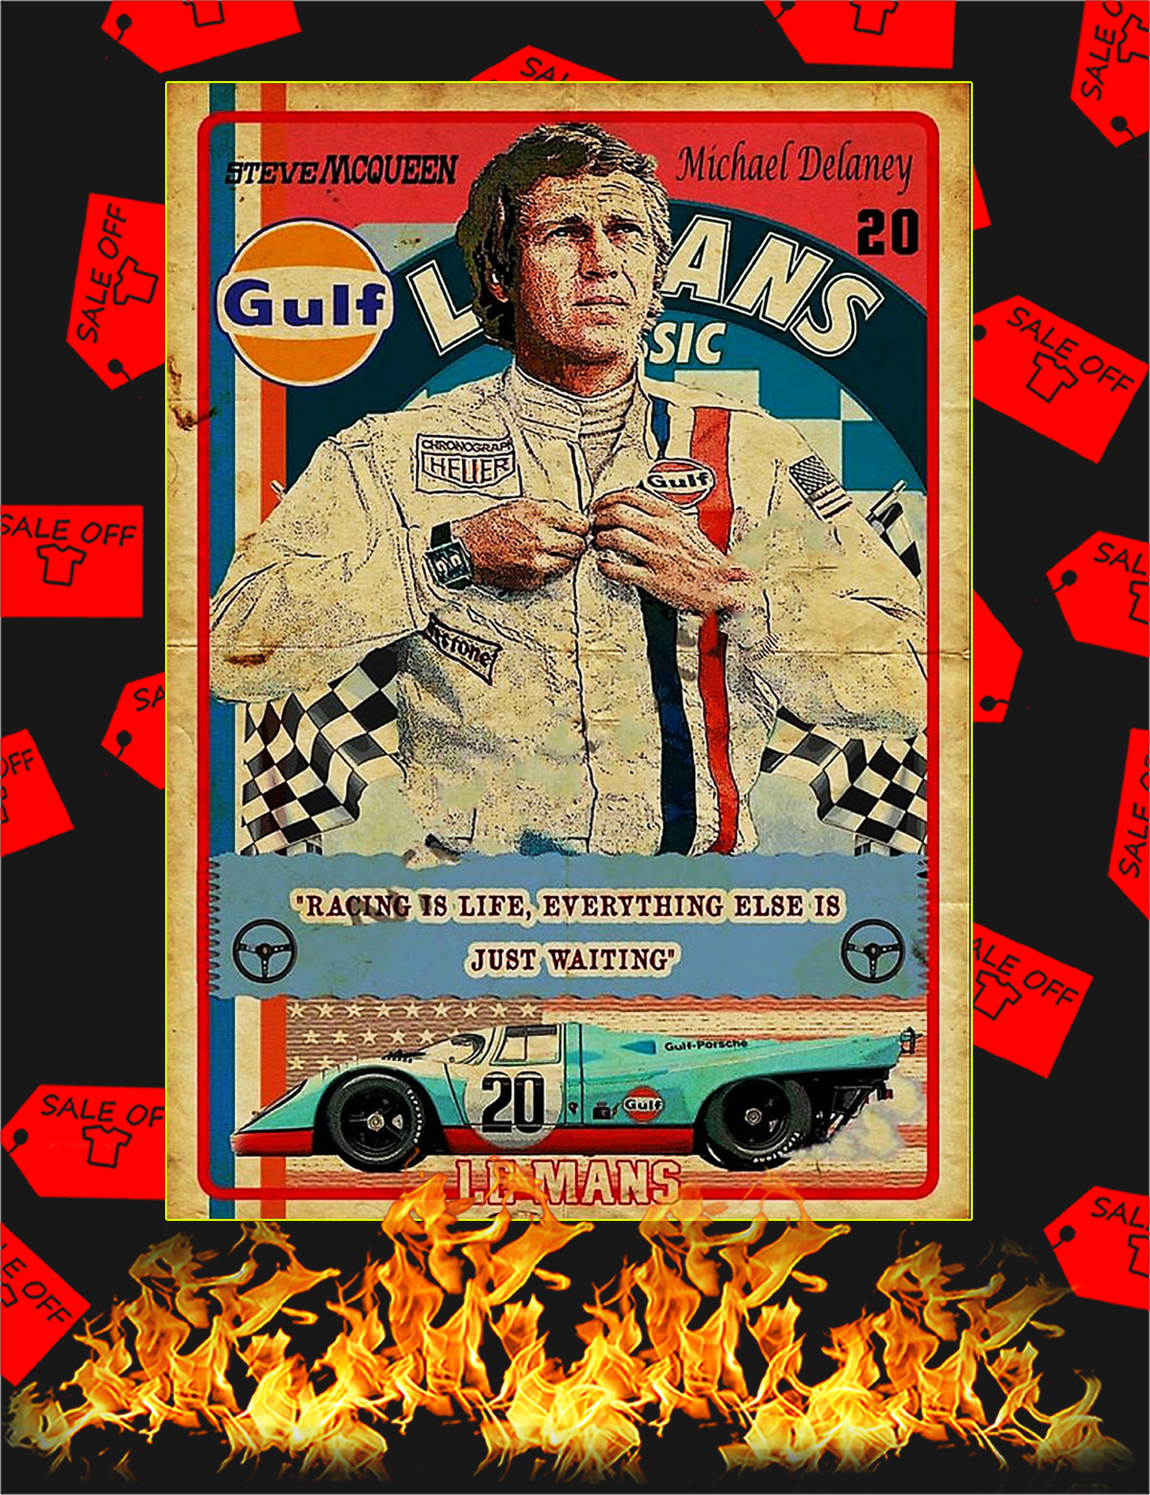 Racing is life everything else is just waiting Steve Mcqueen Poster - A3